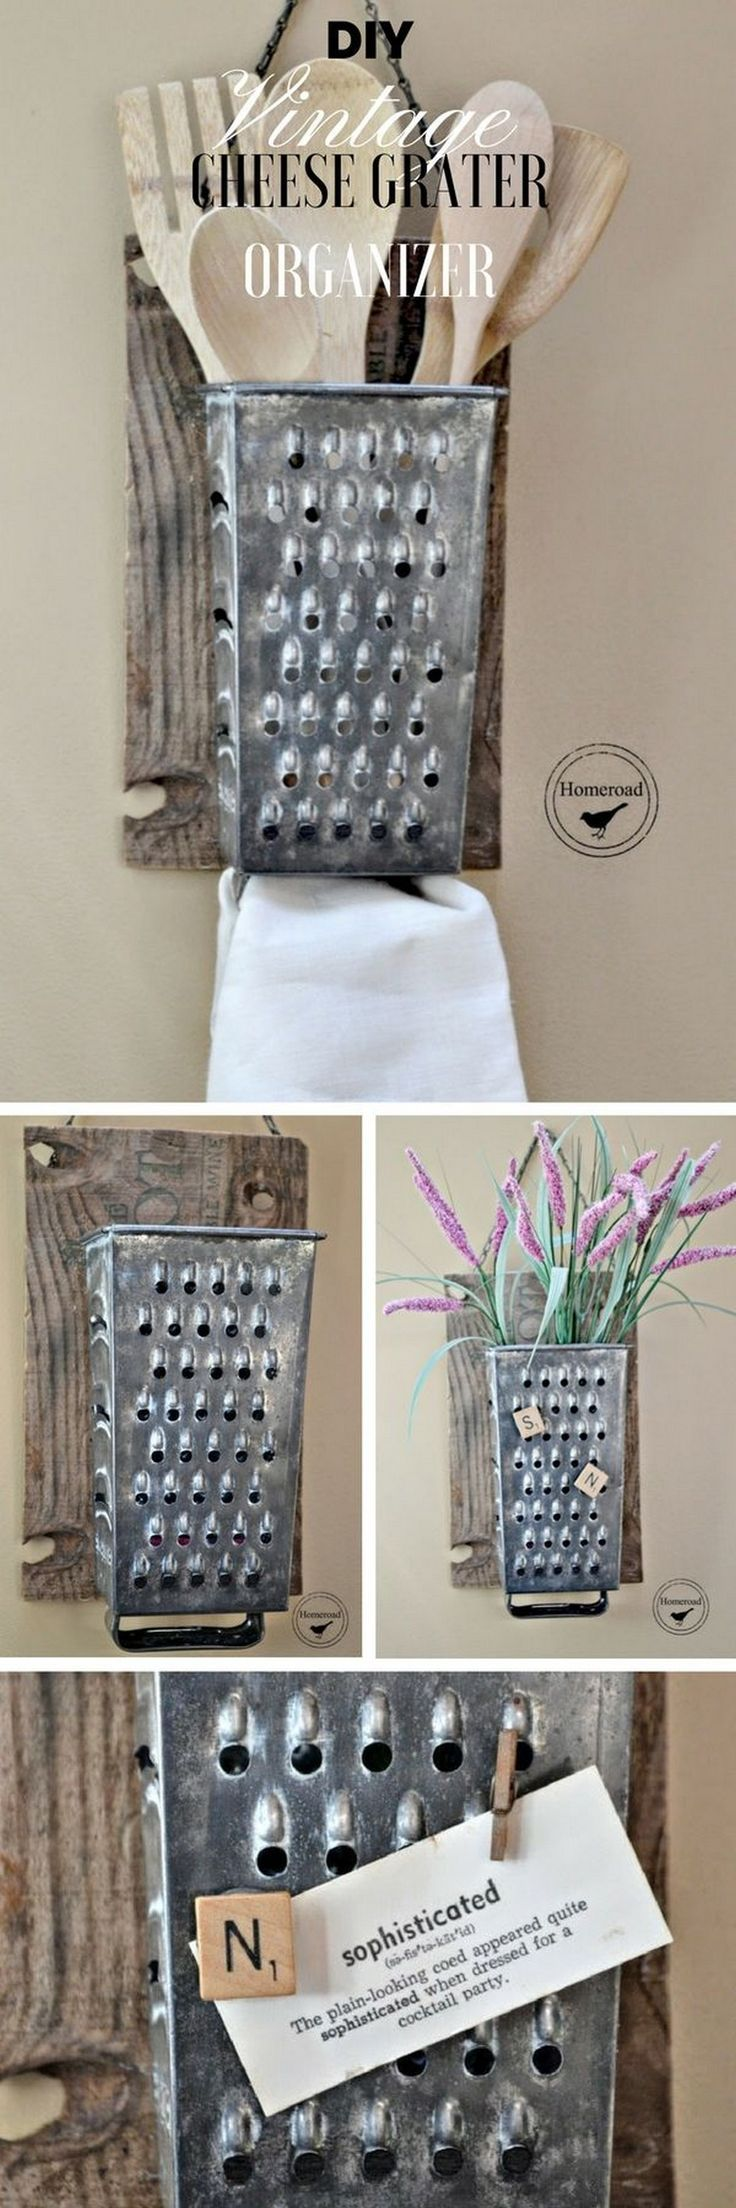 Best 25 rustic home decorating ideas on pinterest dog decorations rustic industrial decor - Coupon home decorators decoration ...